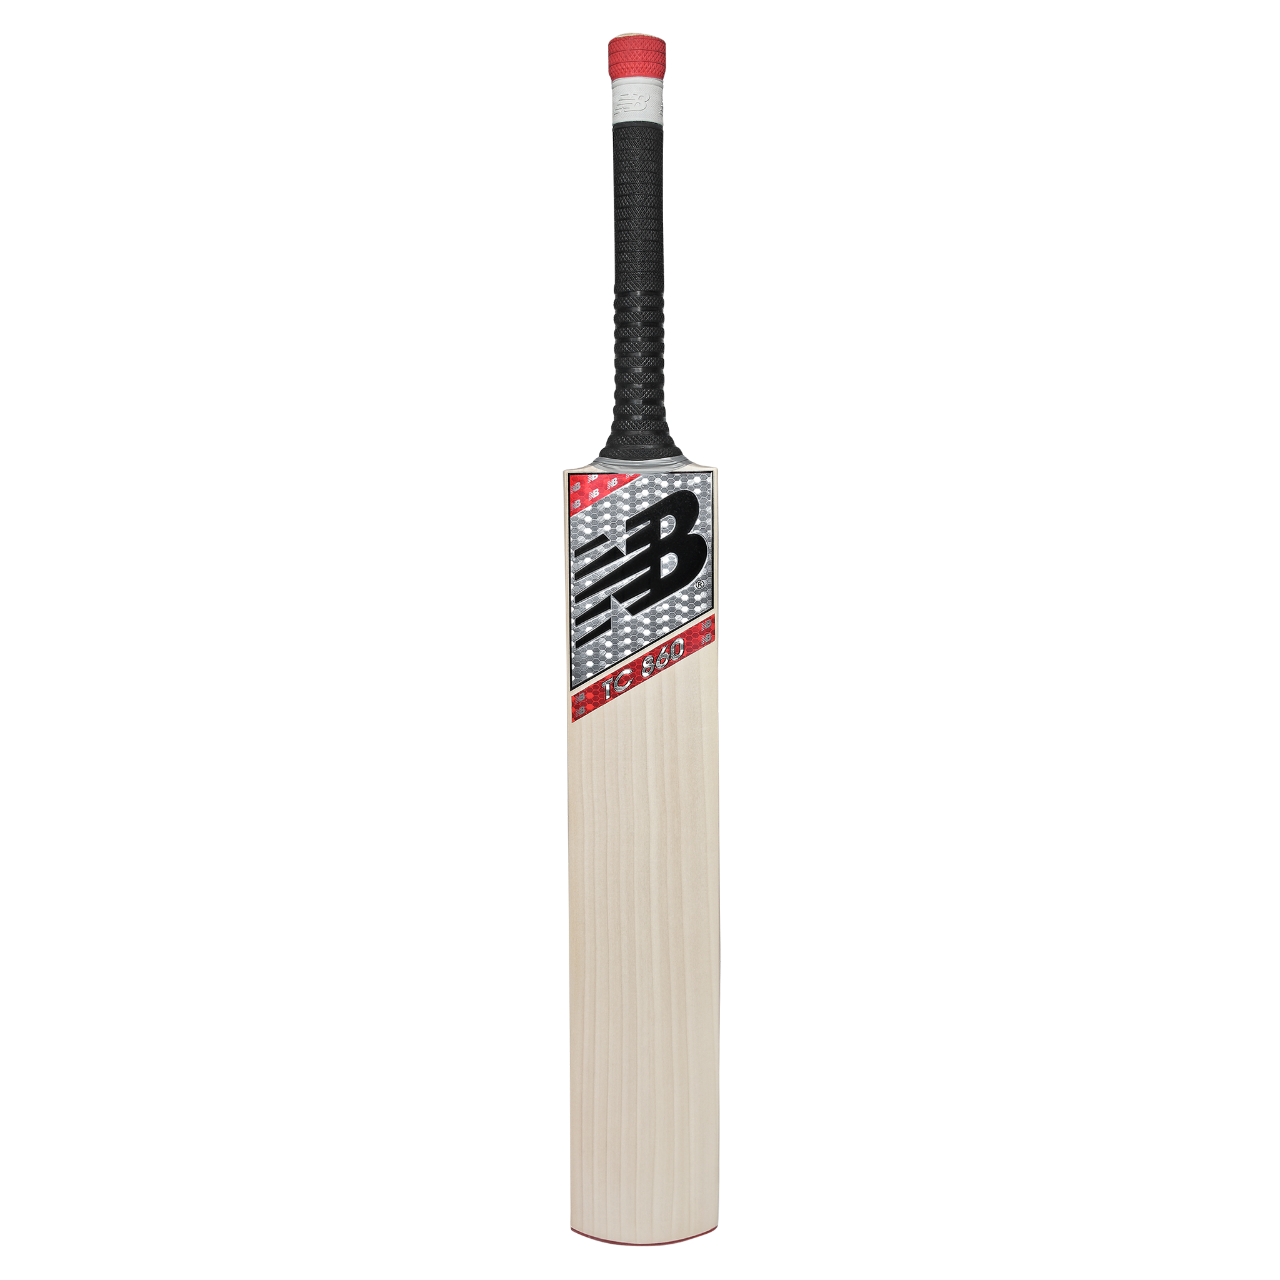 2021 New Balance TC 860 Junior Cricket Bat